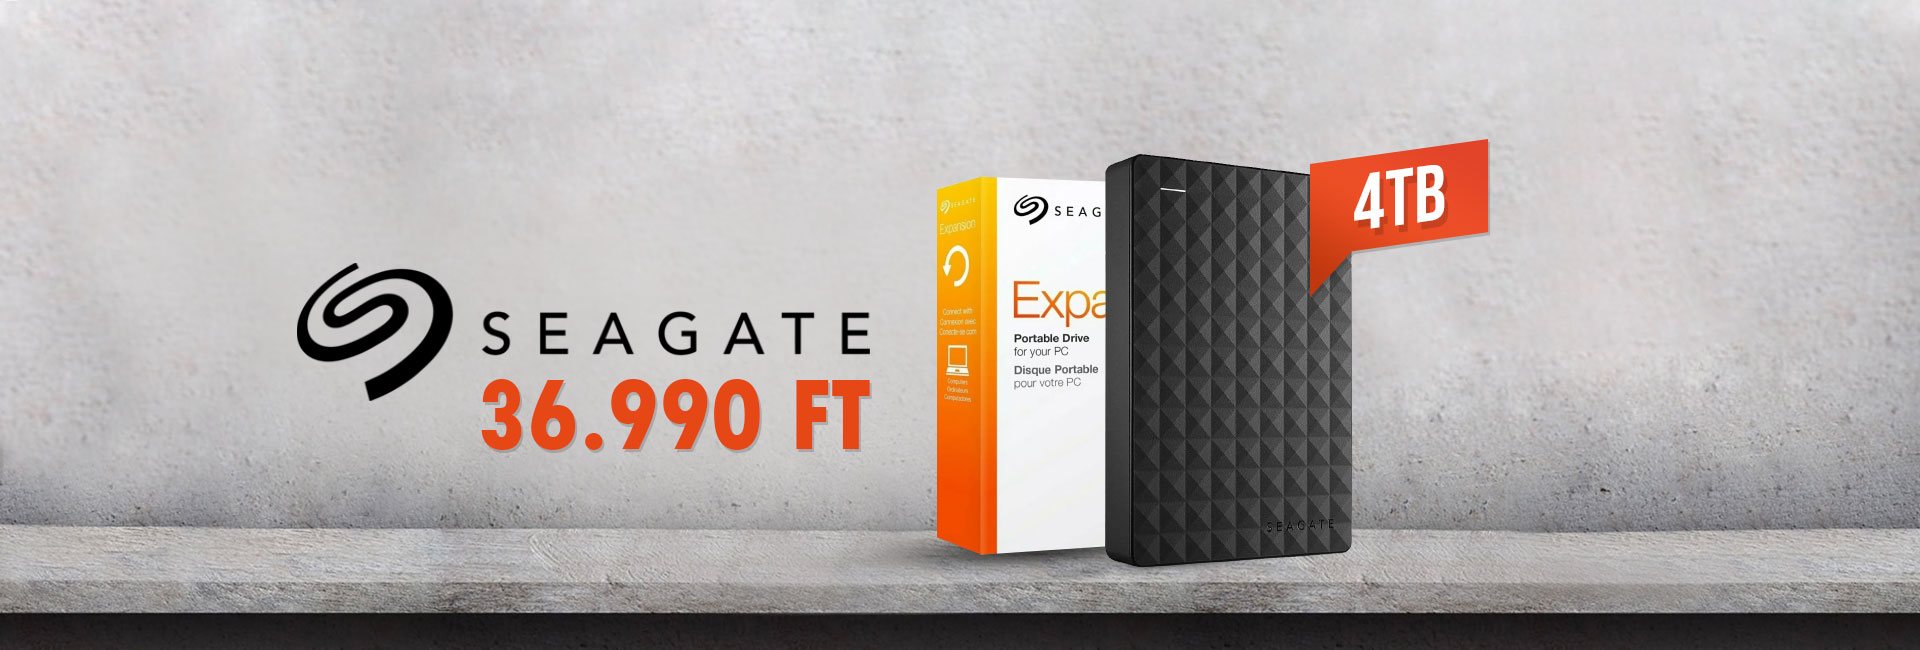 Seagate Expansion Port 4TB